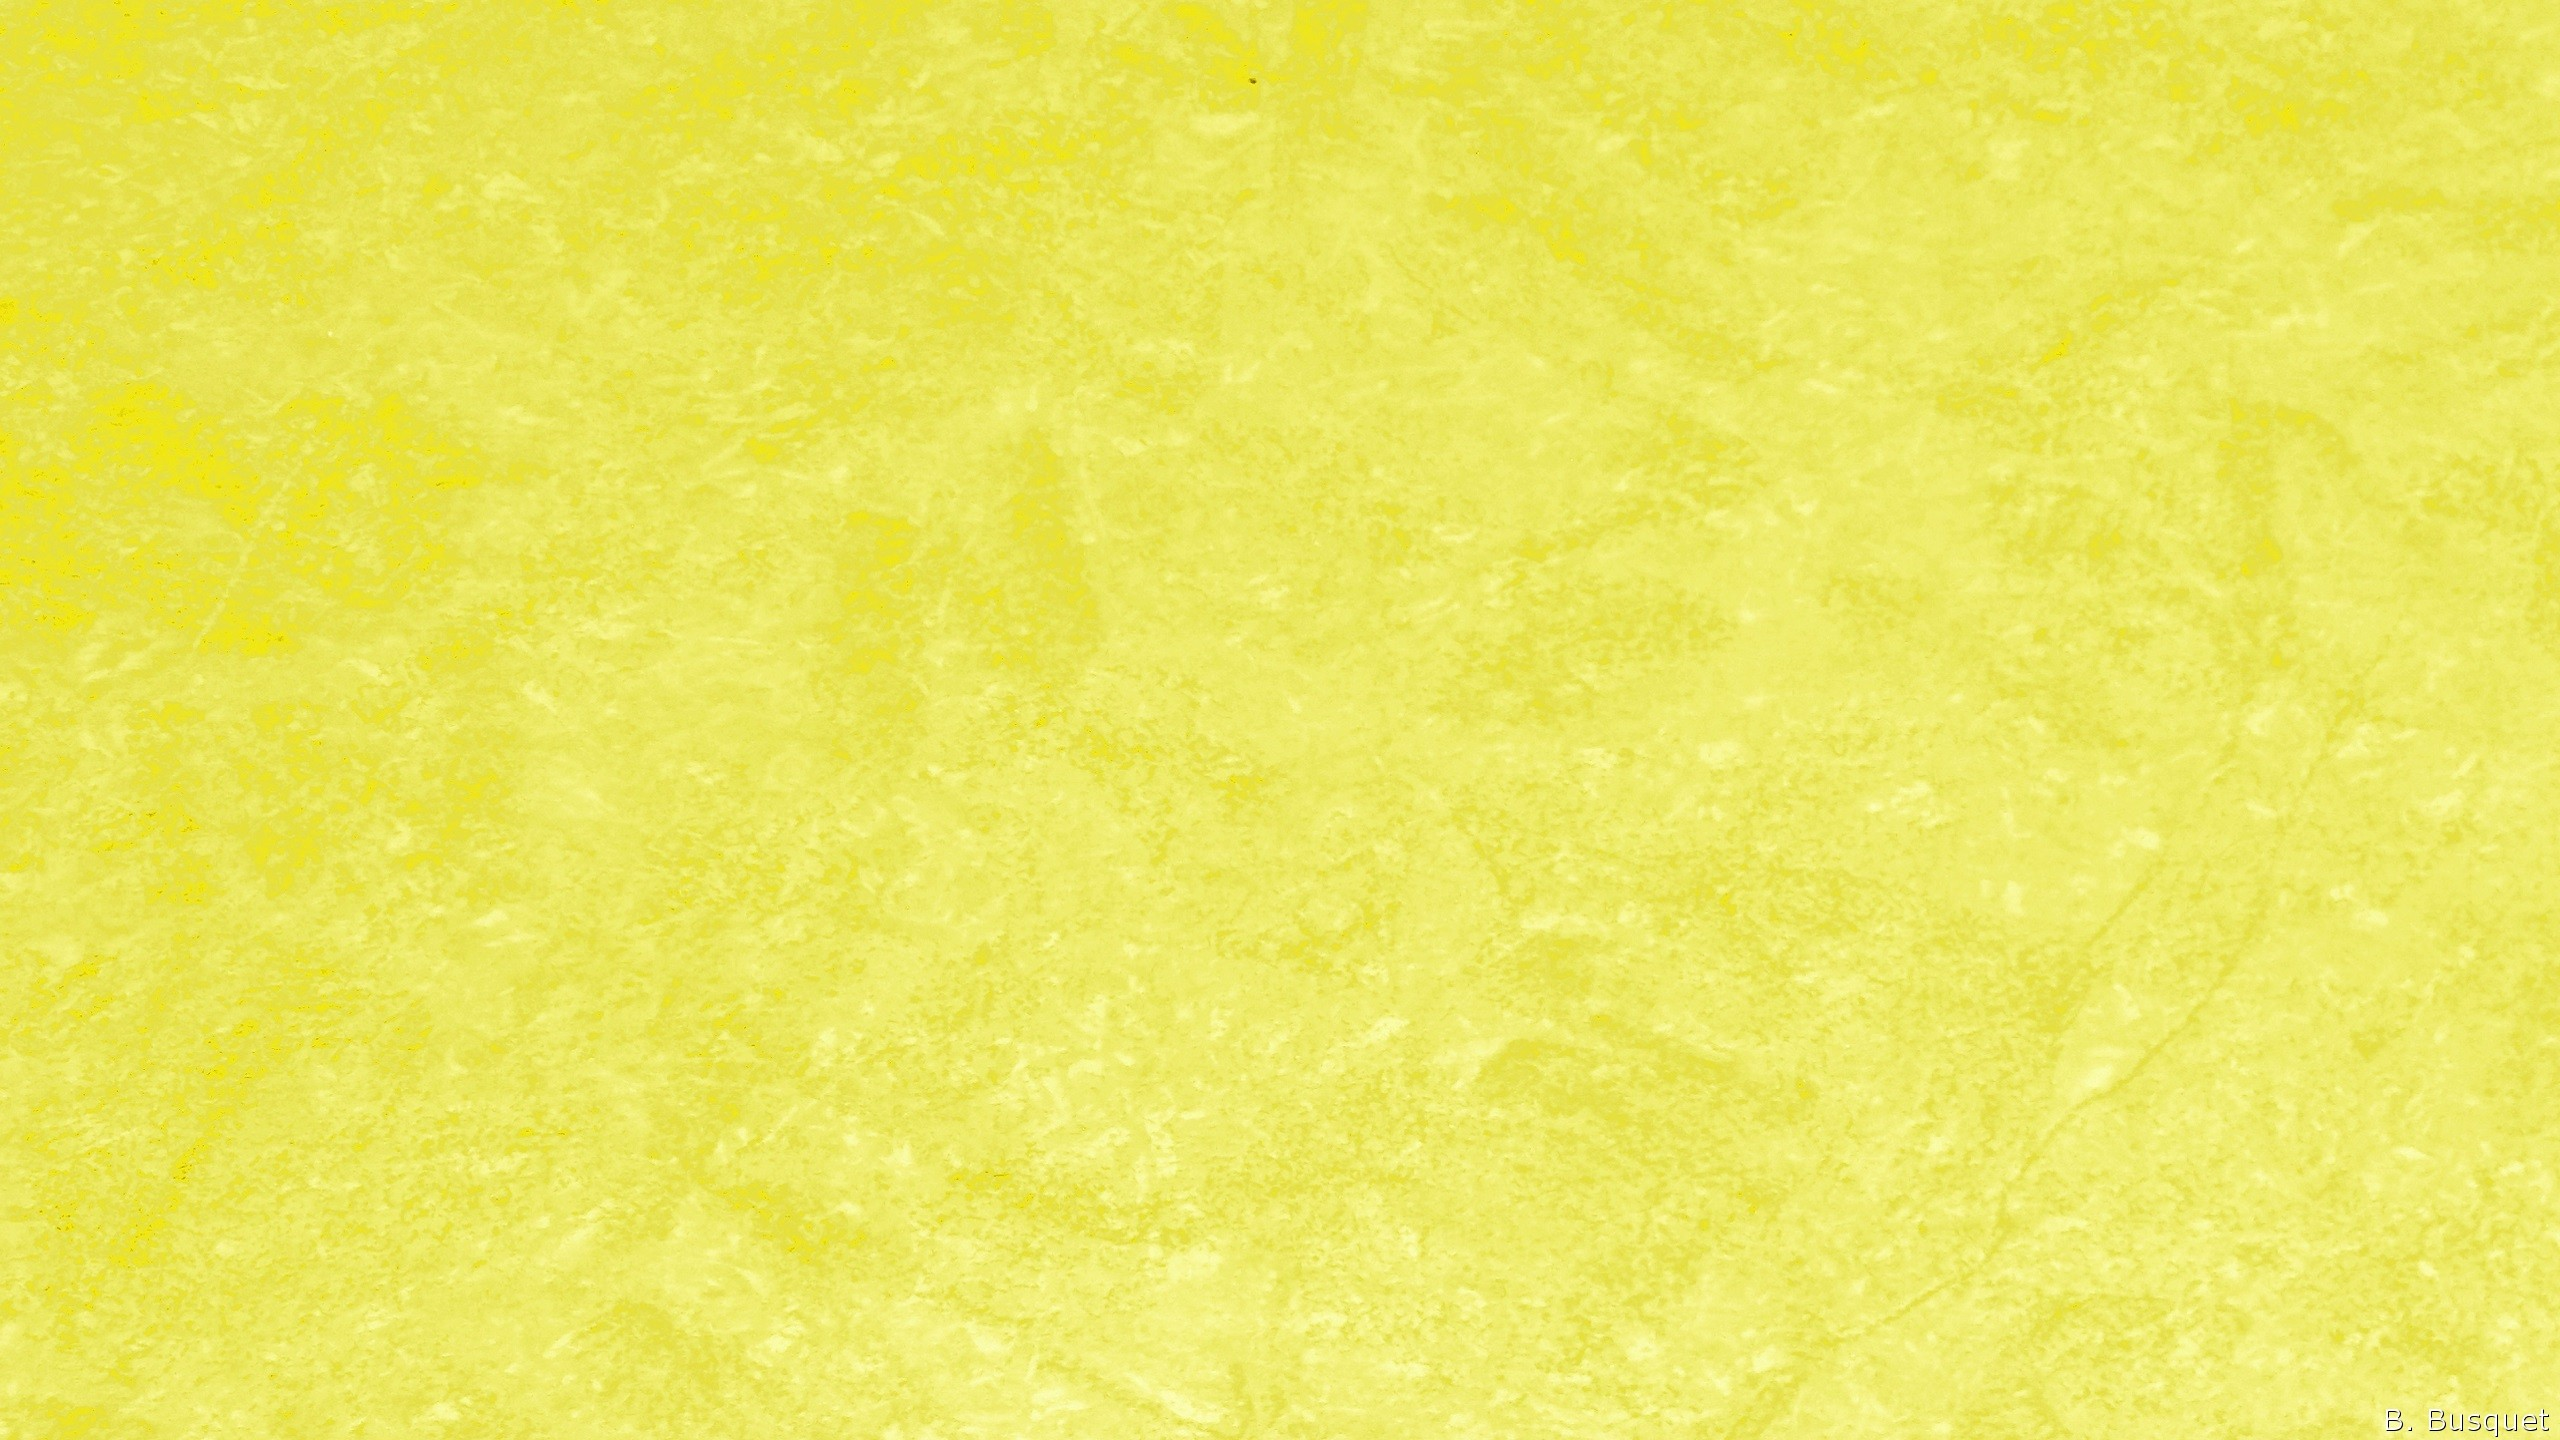 yellow wallpaper essays paper Free literary analysis essay example on the yellow wallpaper.